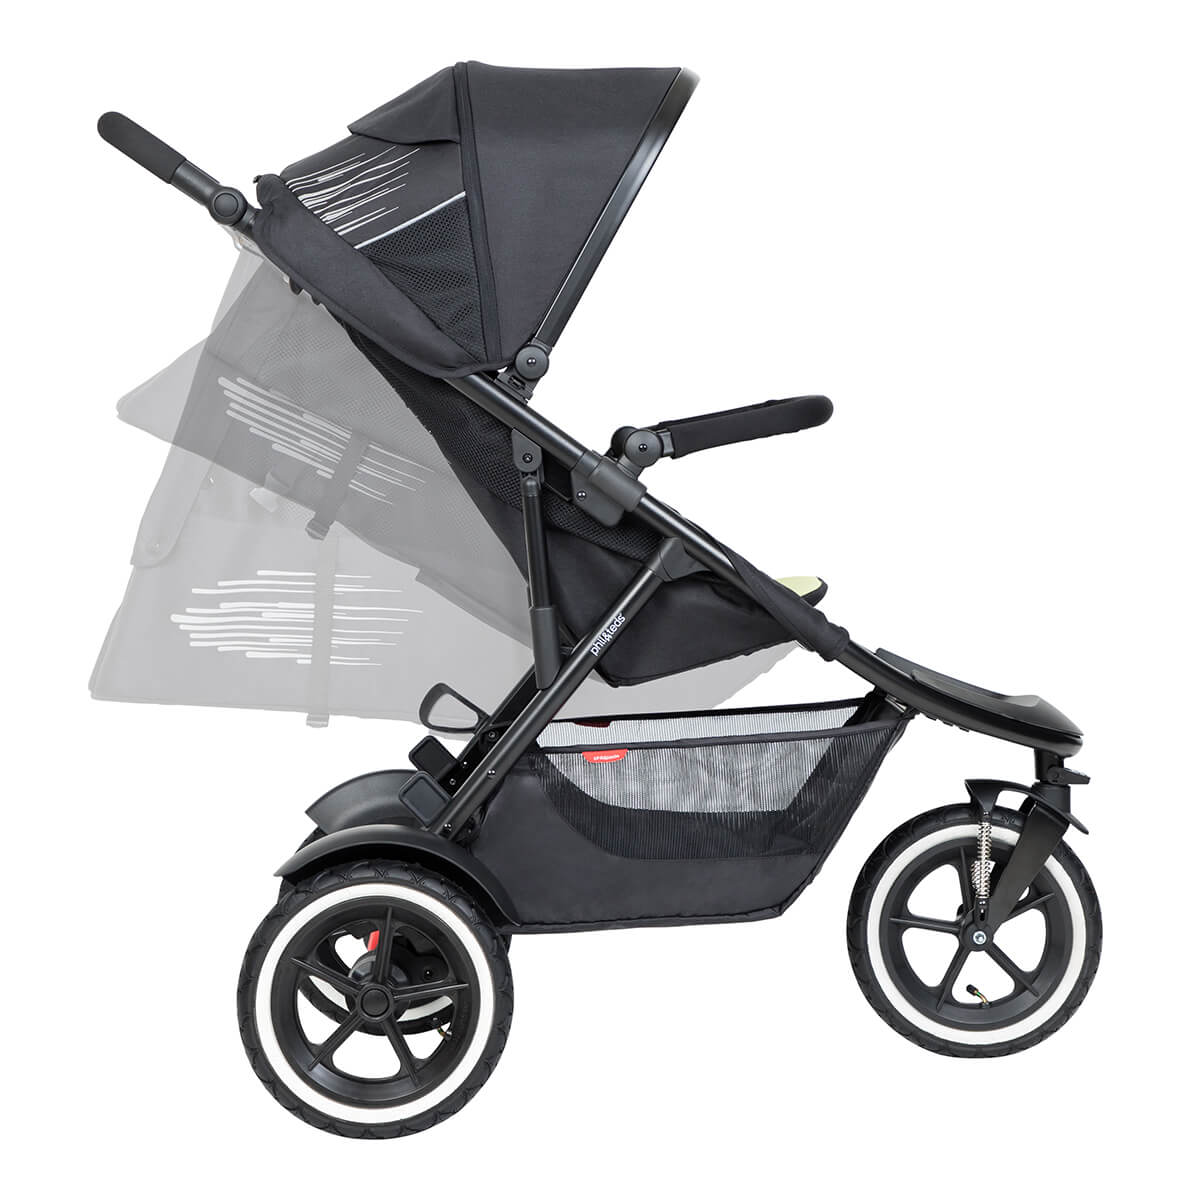 https://cdn.accentuate.io/4546157969513/19119322628201/philteds-sport-buggy-can-recline-in-multiple-angles-including-full-recline-for-newborn-baby-v1625778325232.jpg?1200x1200